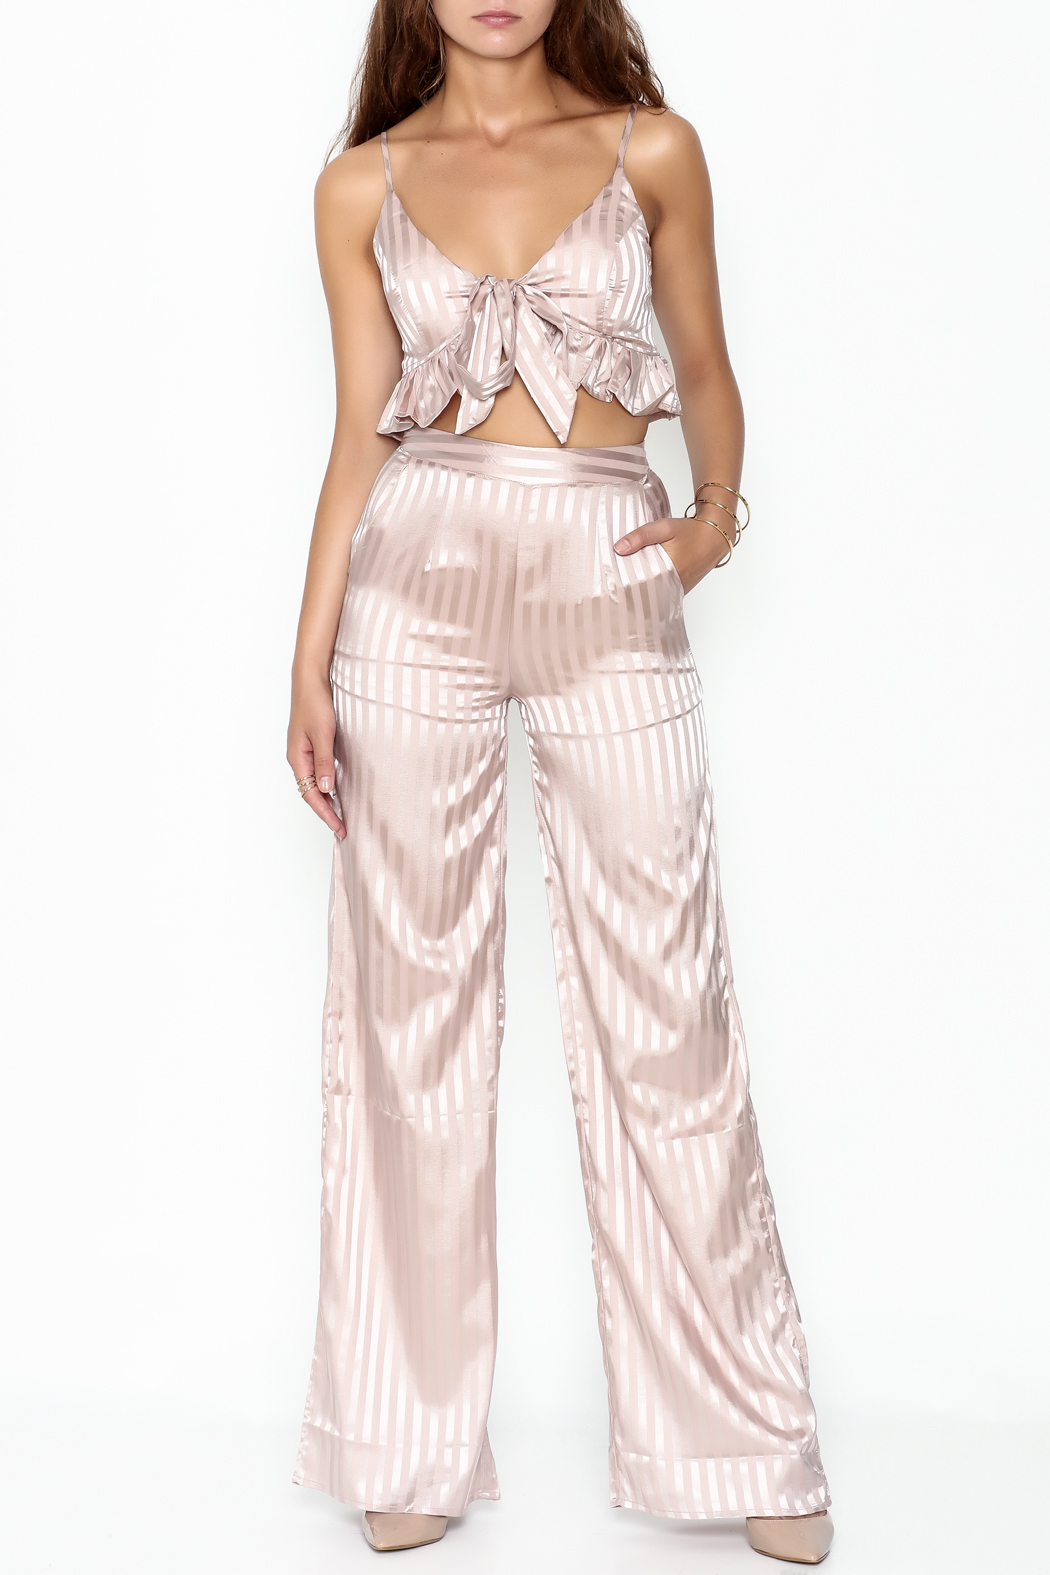 L'atiste Stripe Pant Set - Main Image